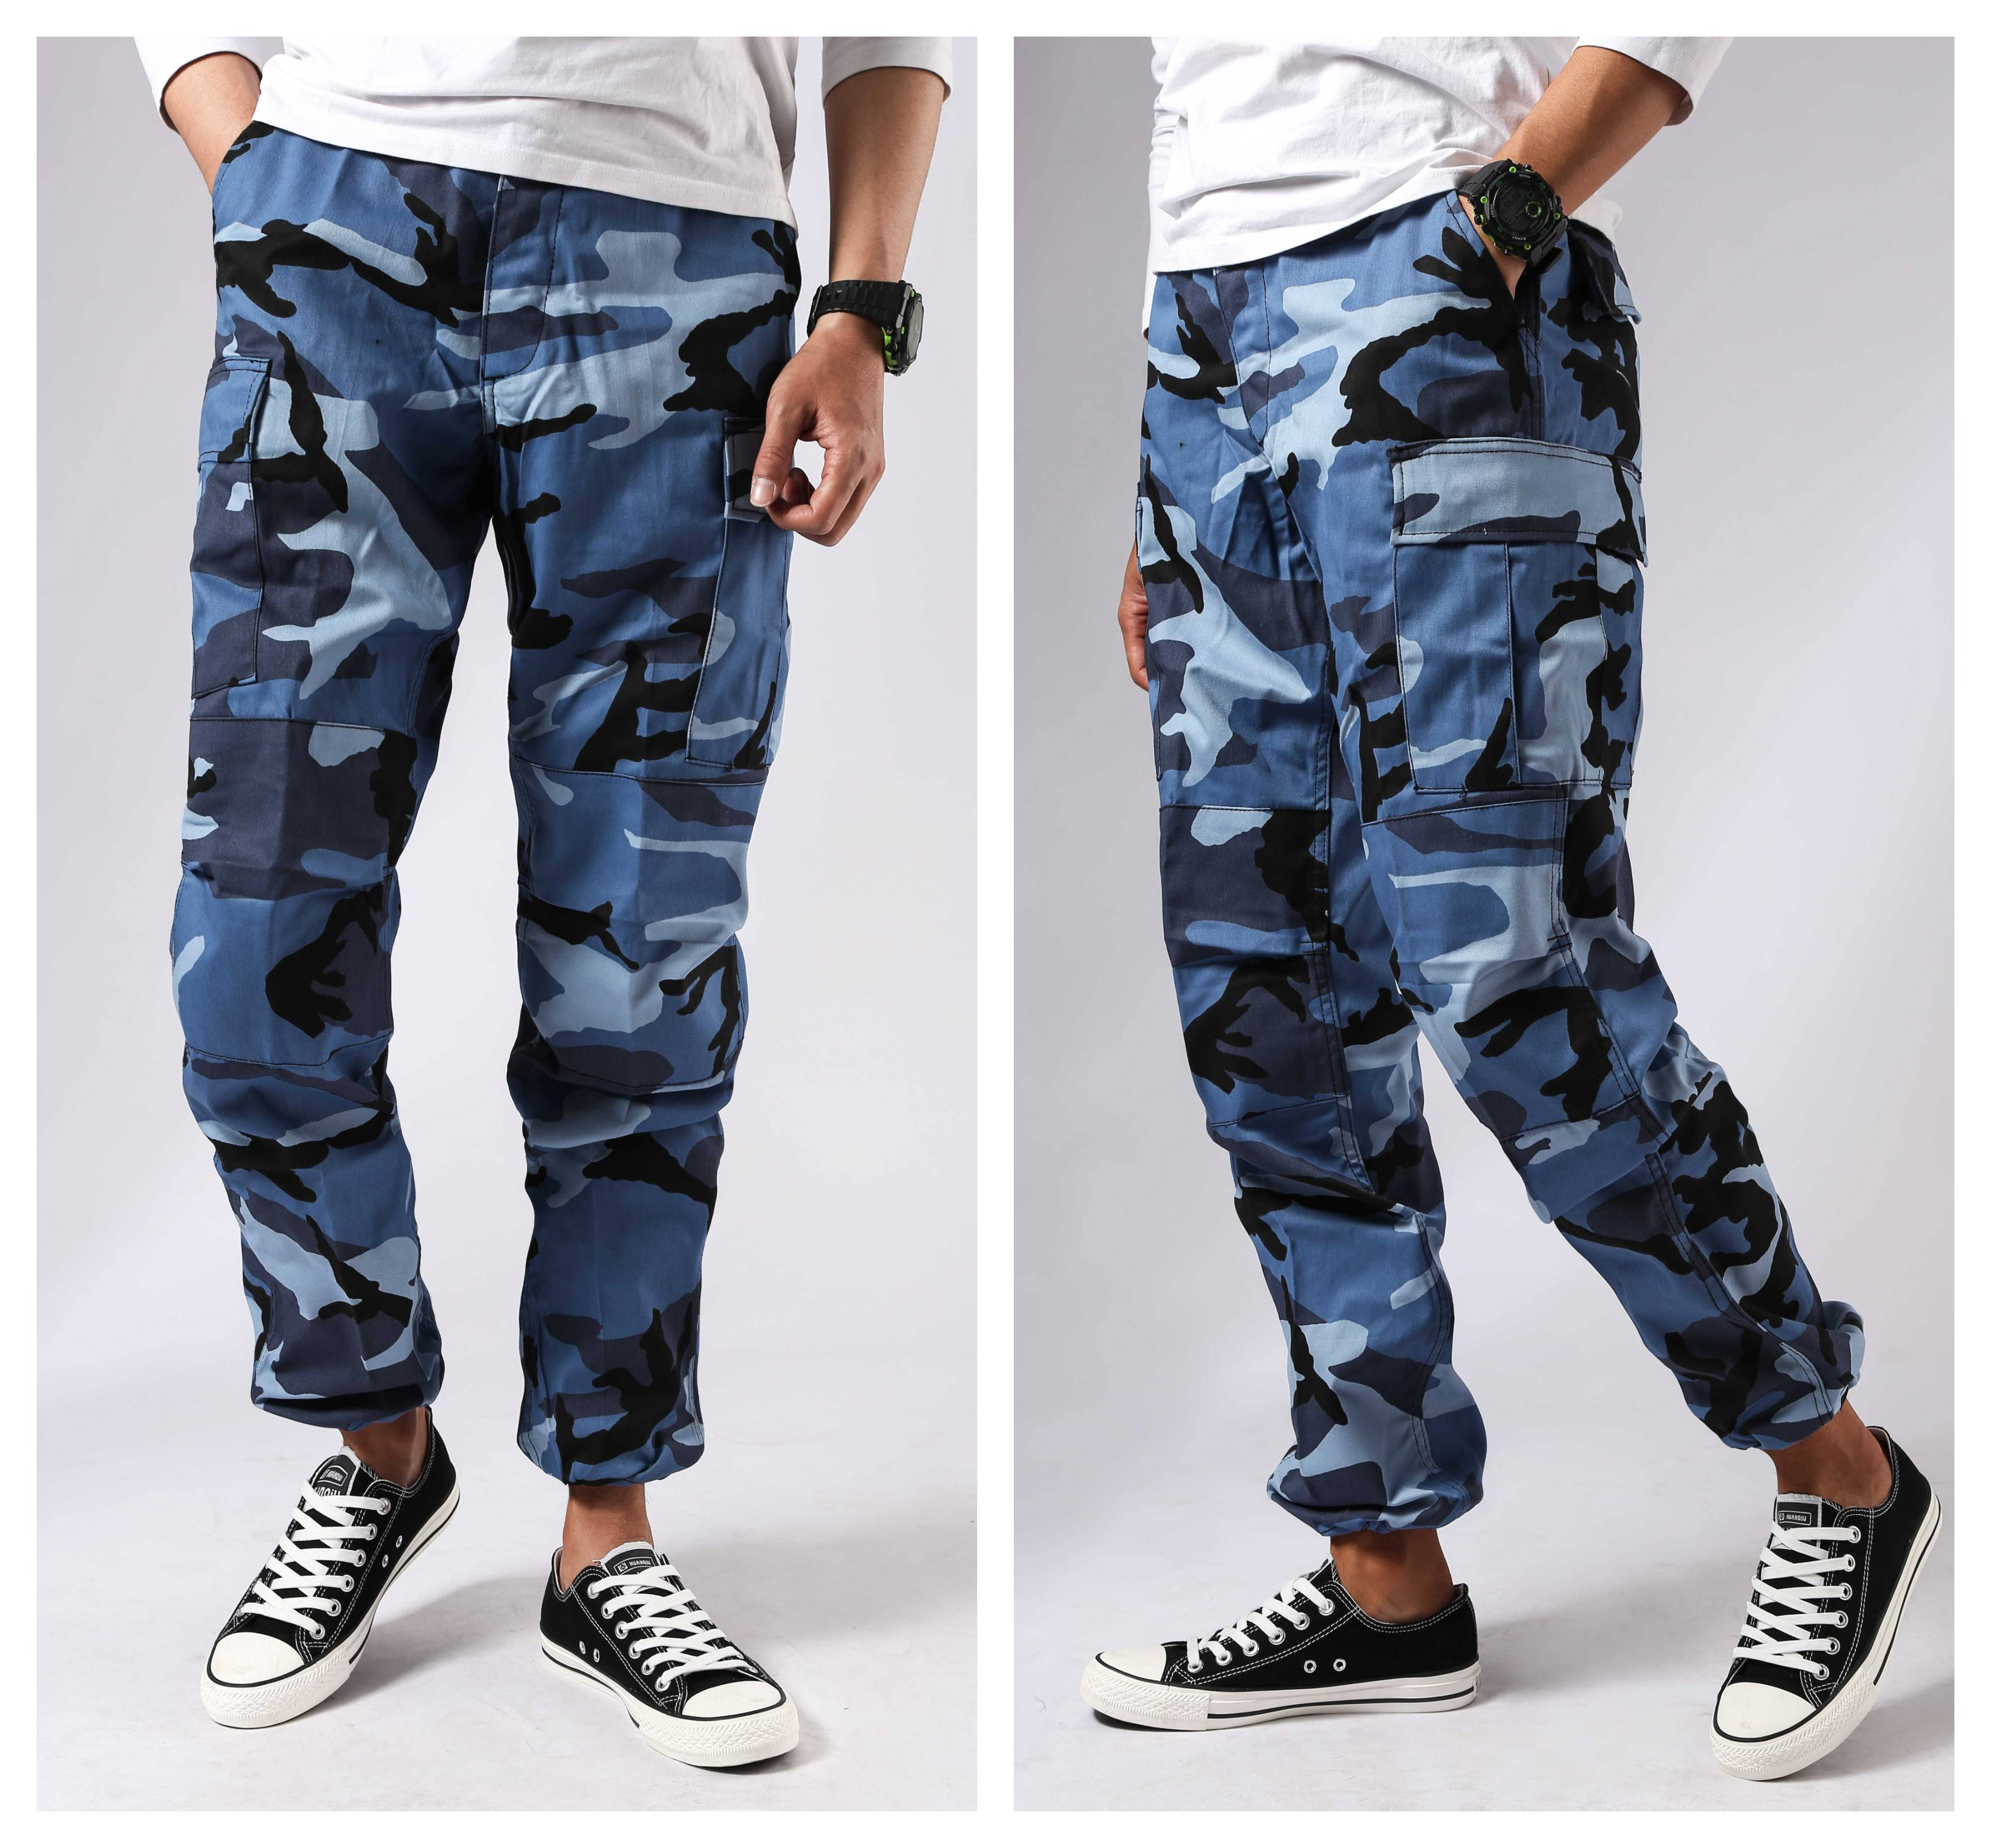 Mens Military Army Combat BDU Pants Work Casual Camouflage Fashion Cargo Pants